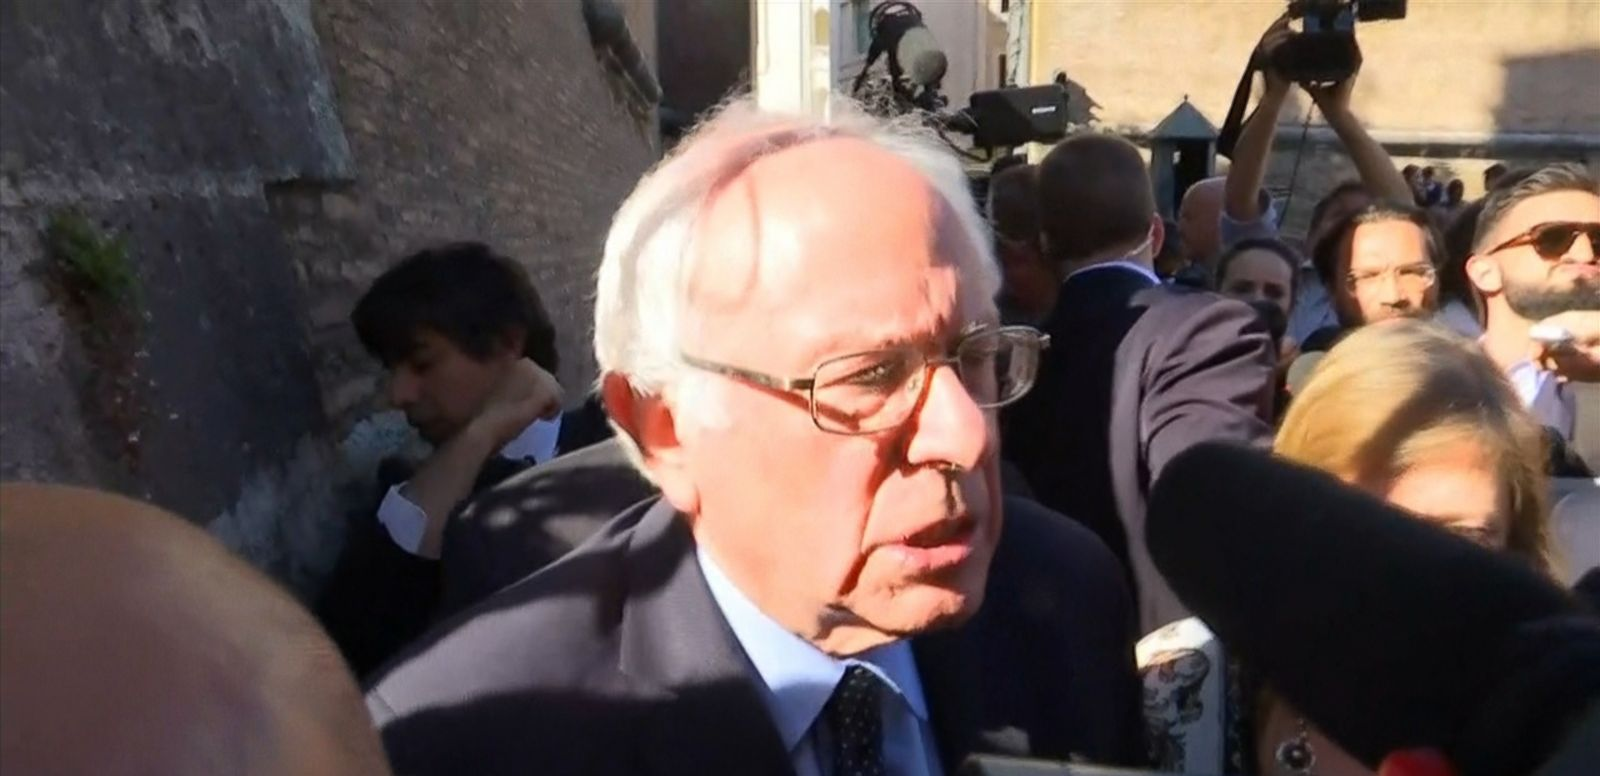 VIDEO: The Democratic presidential candidate speaks with reporters during his trip to the Vatican.